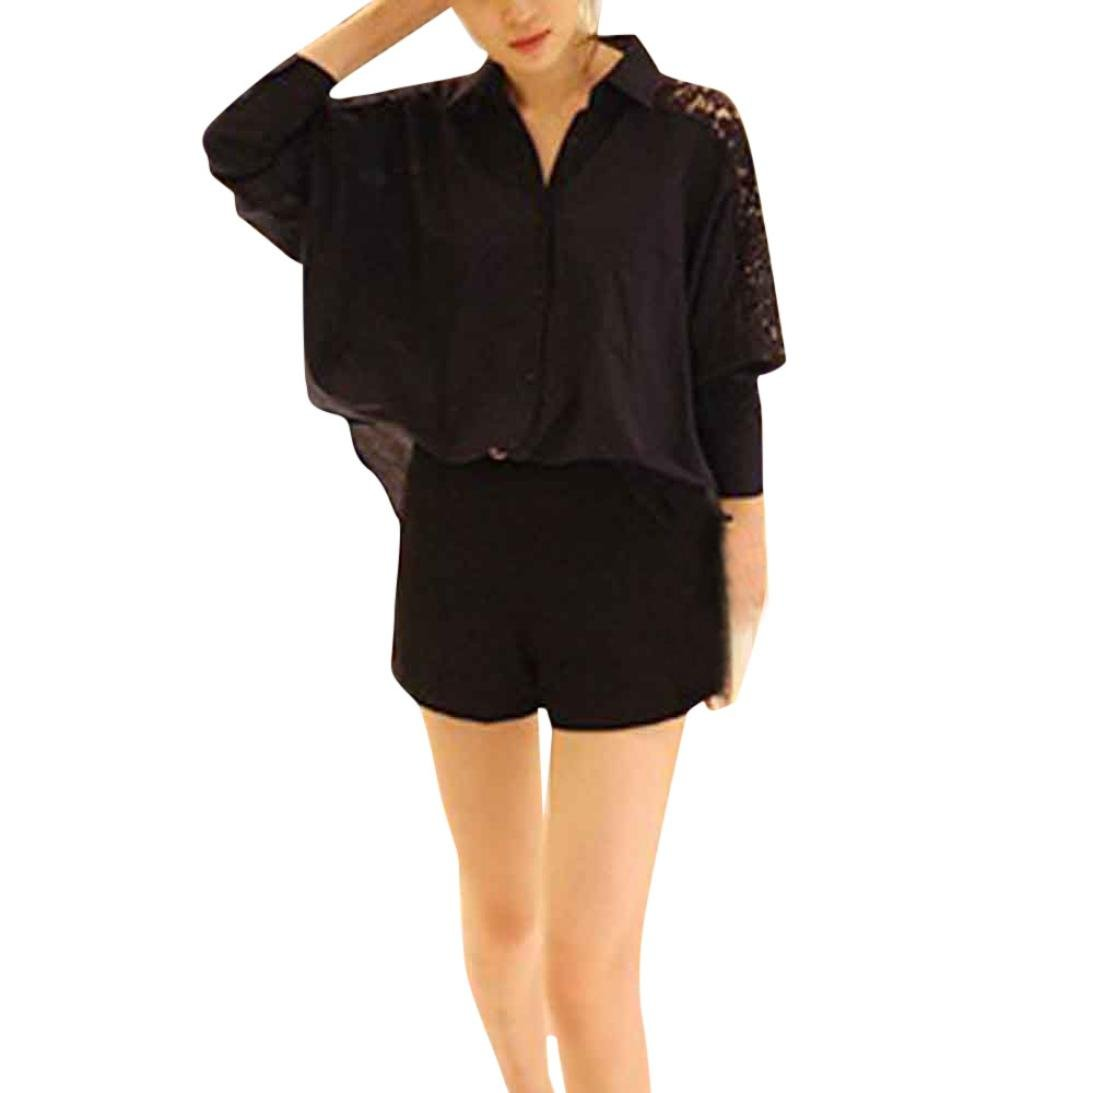 Orangeskycn Formal Shirts For Women Casual Plus Size Lace Loose Long Sleeve Blouse